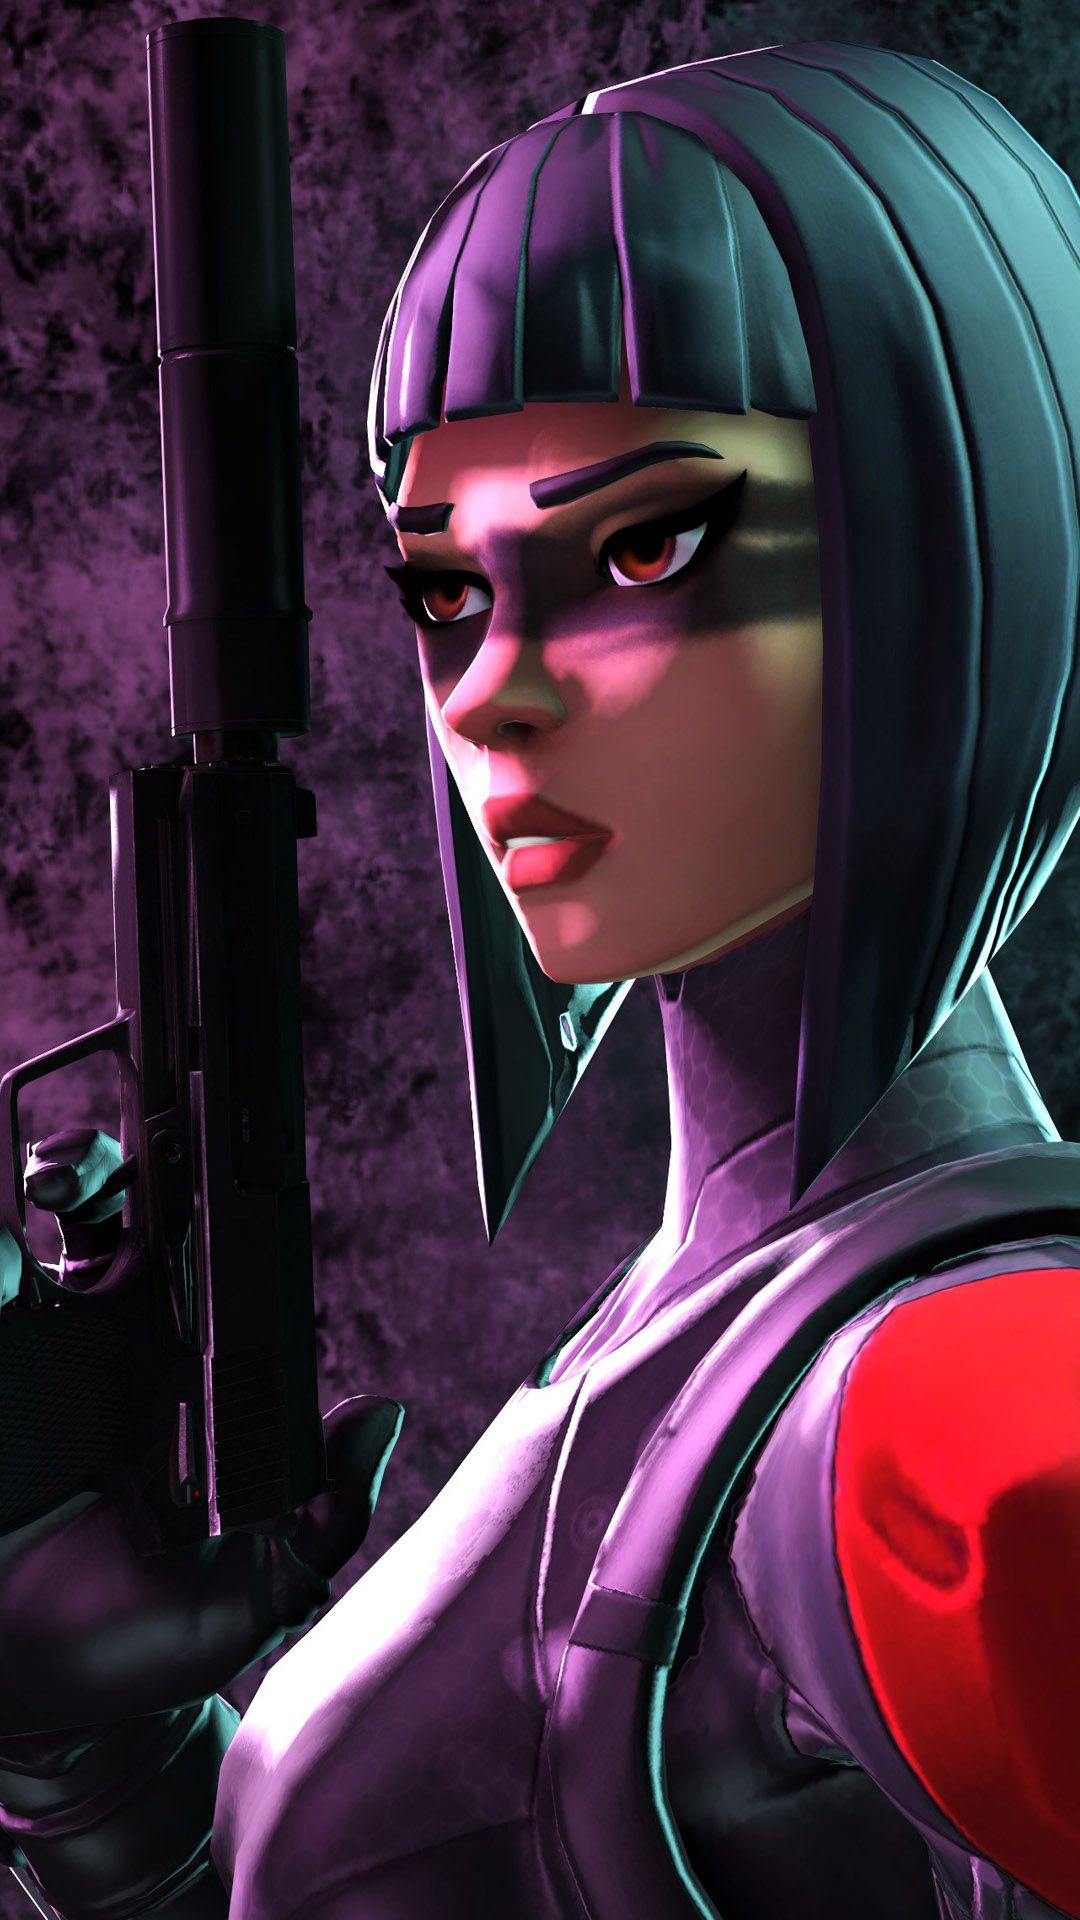 Fortnite Wallpapers 45 Gaming Wallpapers Video Game Art Best Gaming Wallpapers